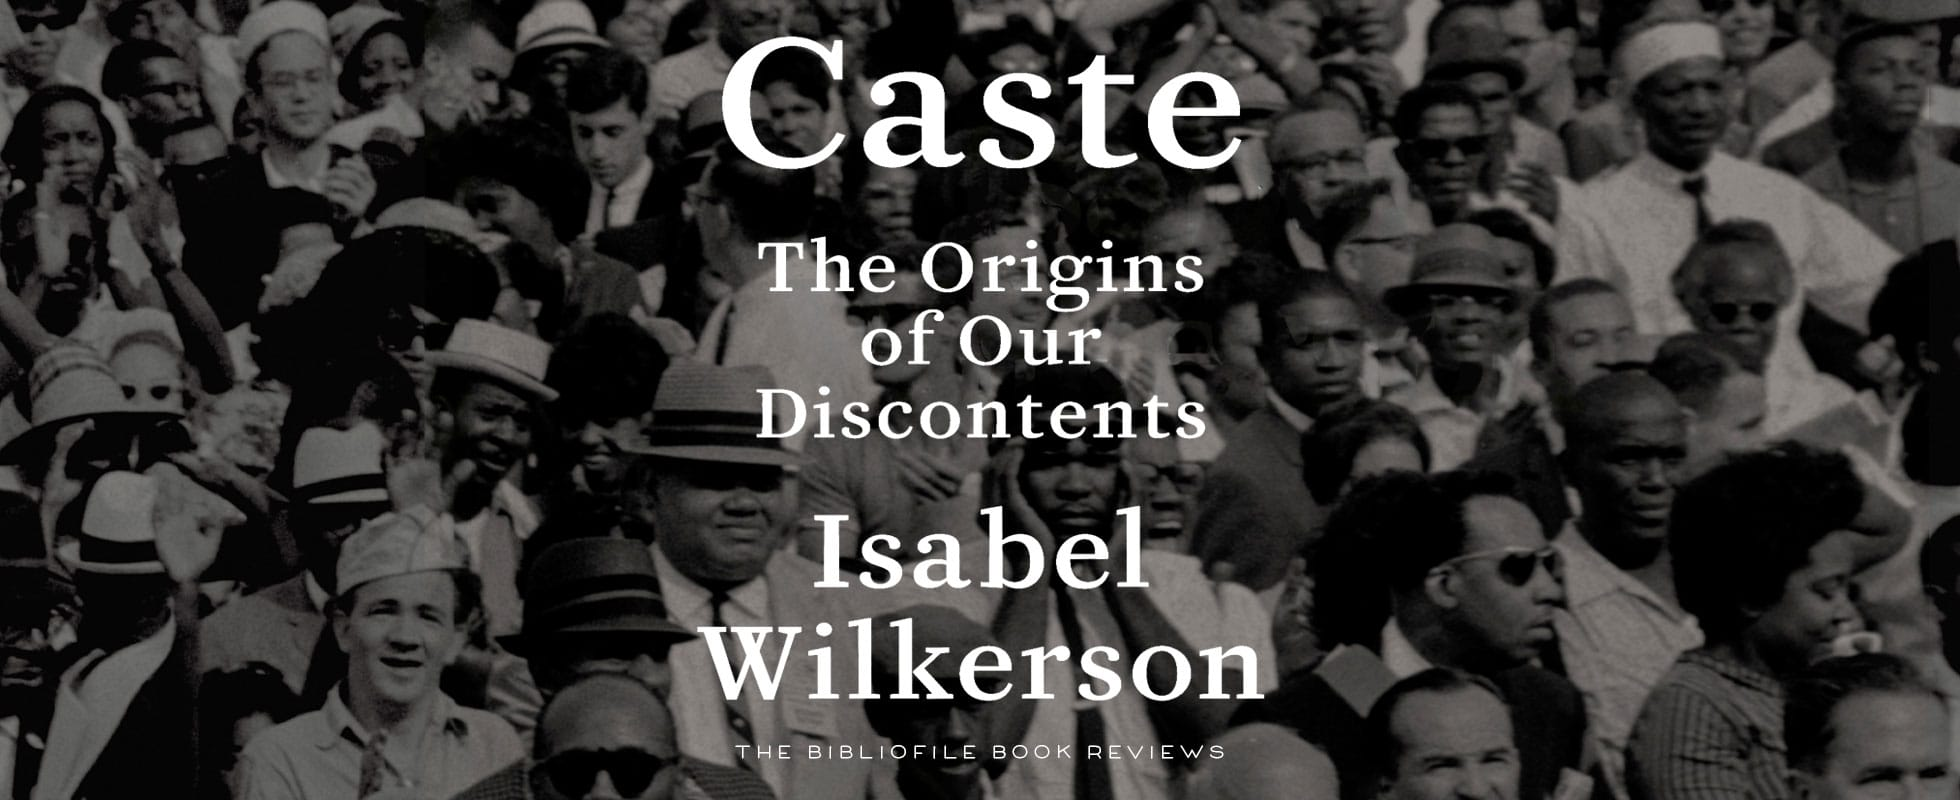 caste isabel wilkerson book guide review summary synopsis key takeaways key ideas recap